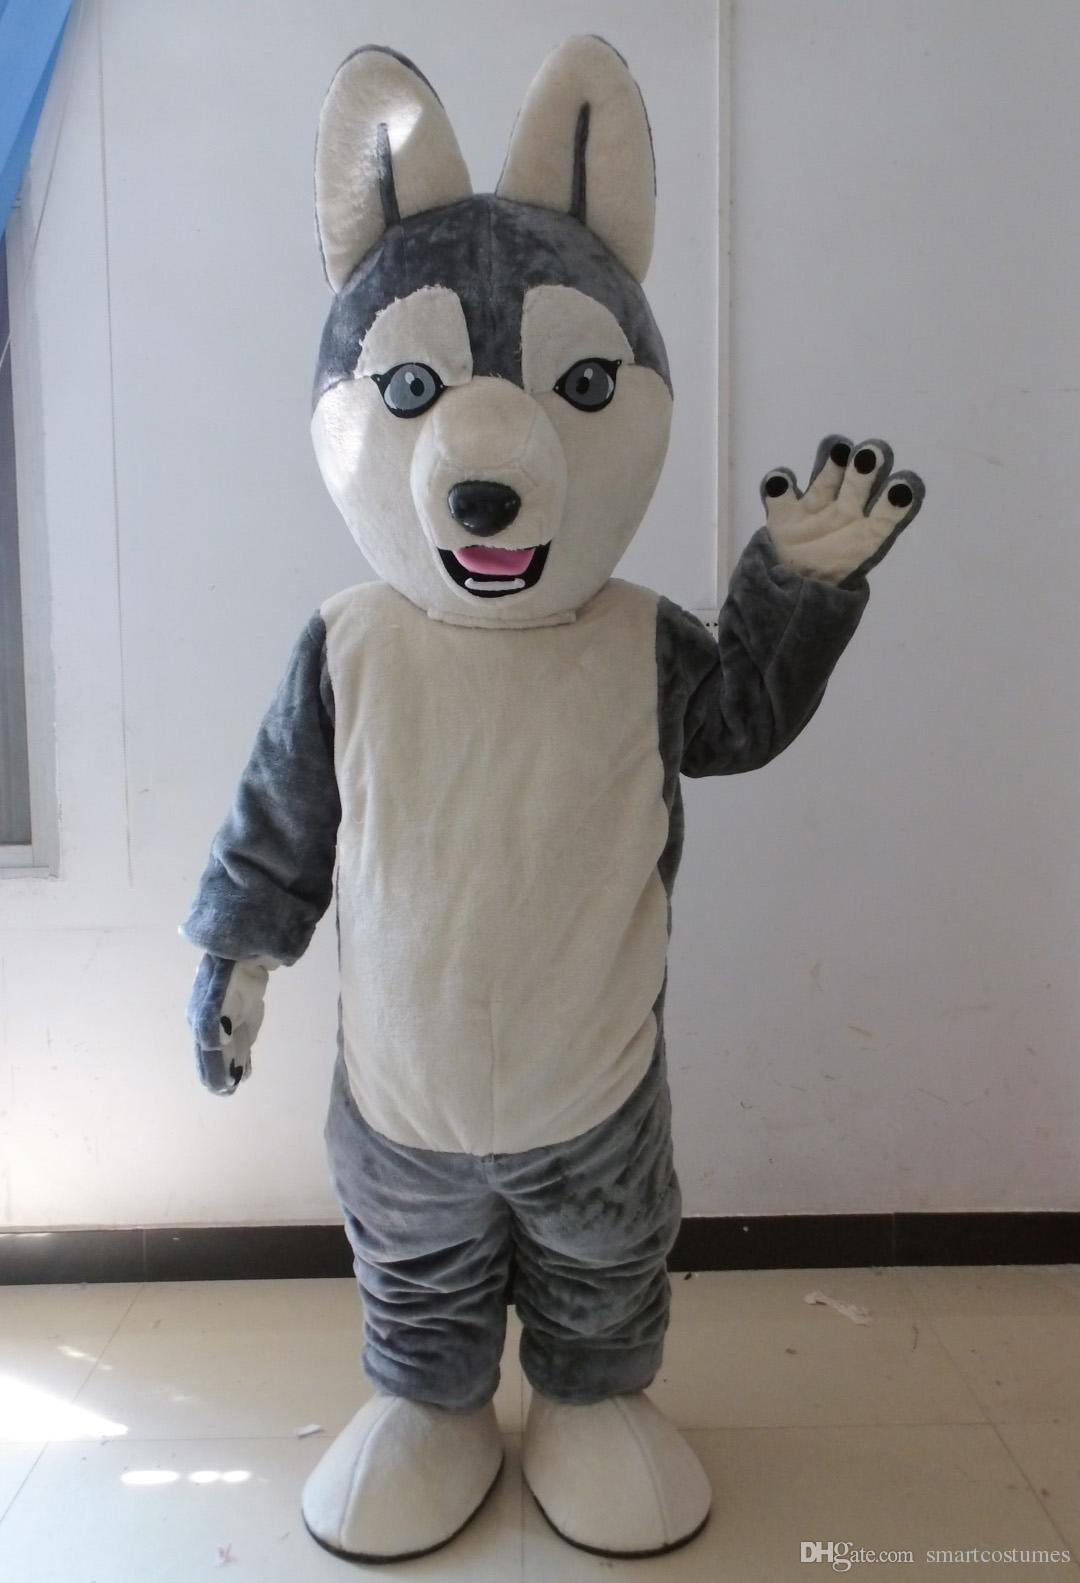 sx0727 good vision and good ventilation pet dog mascot siberian husky mascot costume for adult to wear for sale angel costumes ladies halloween costumes